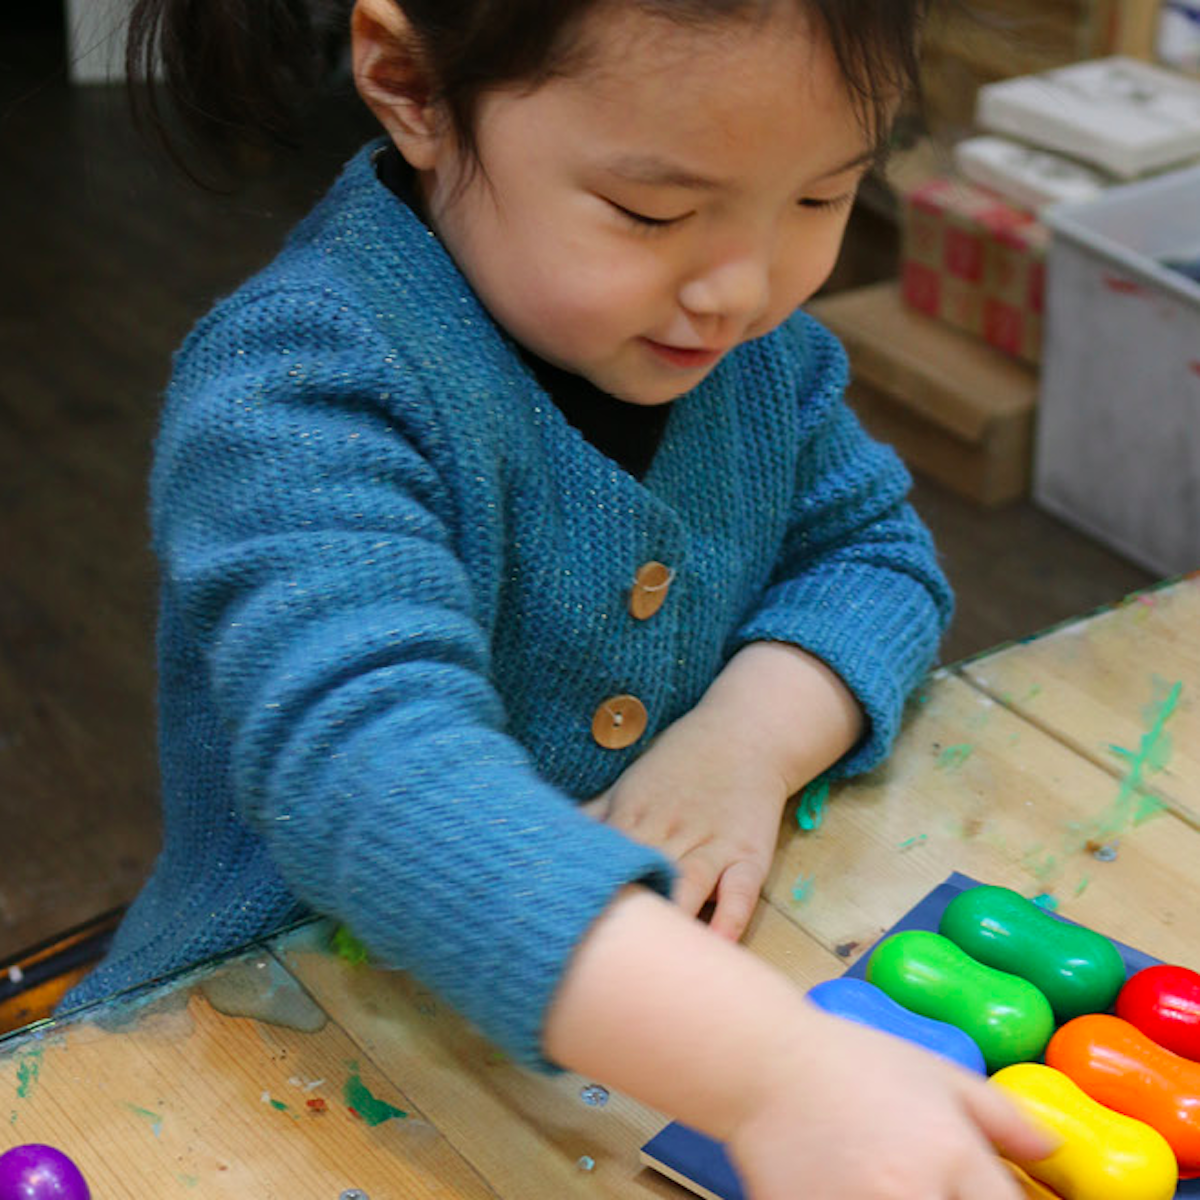 A young girl playing with Goober Crayons peanut crayons at an arts and crafts table